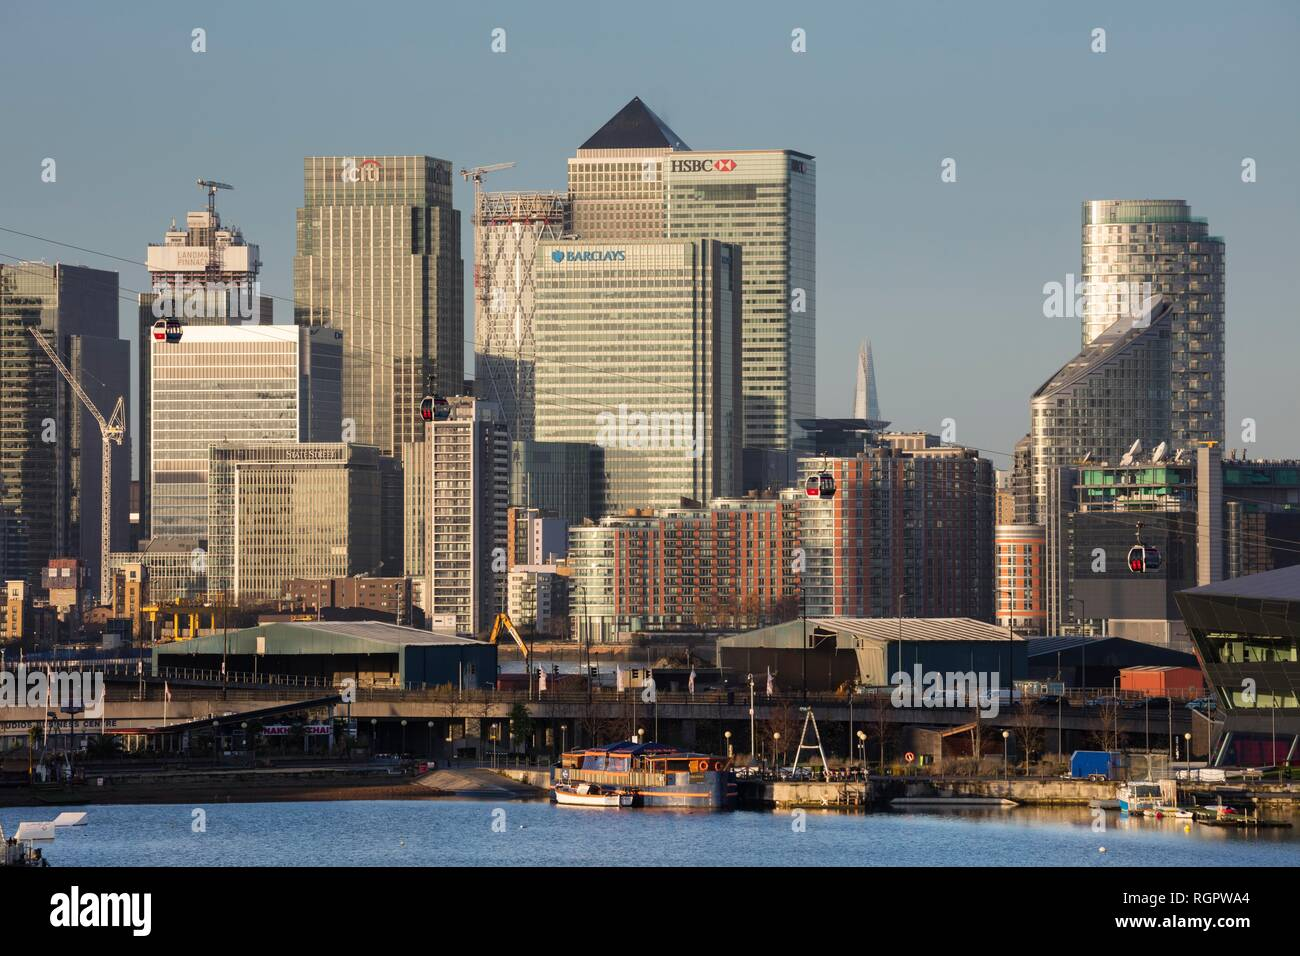 Canary Wharf, Financial Centre, Docklands, London, England, United Kingdom - Stock Image